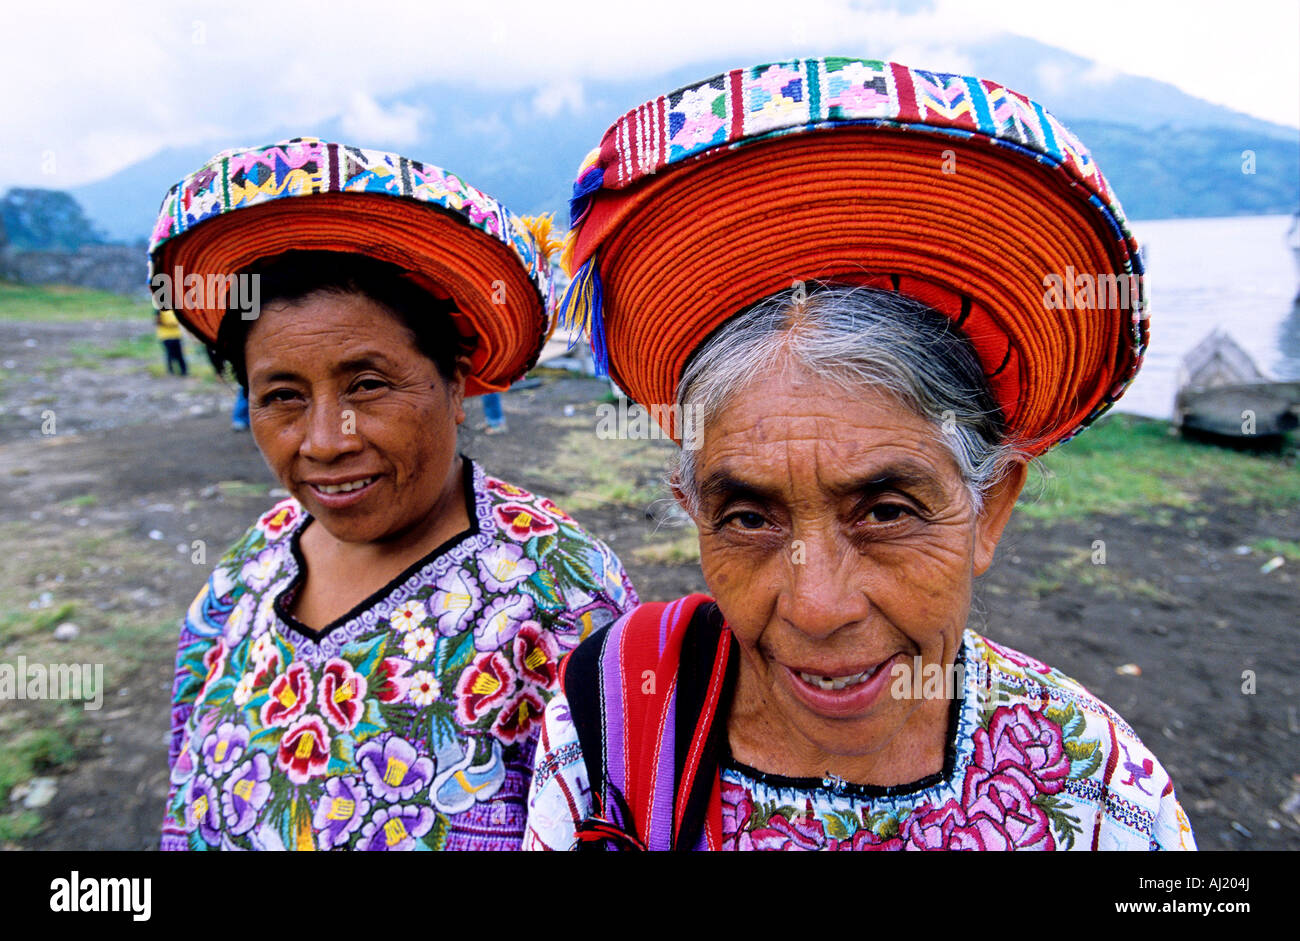 Guatemala, Solola Department, Santiago Atitlan, on Atitlan Lake, mostly populated with Tzutuhil and Cackchiquels - Stock Image